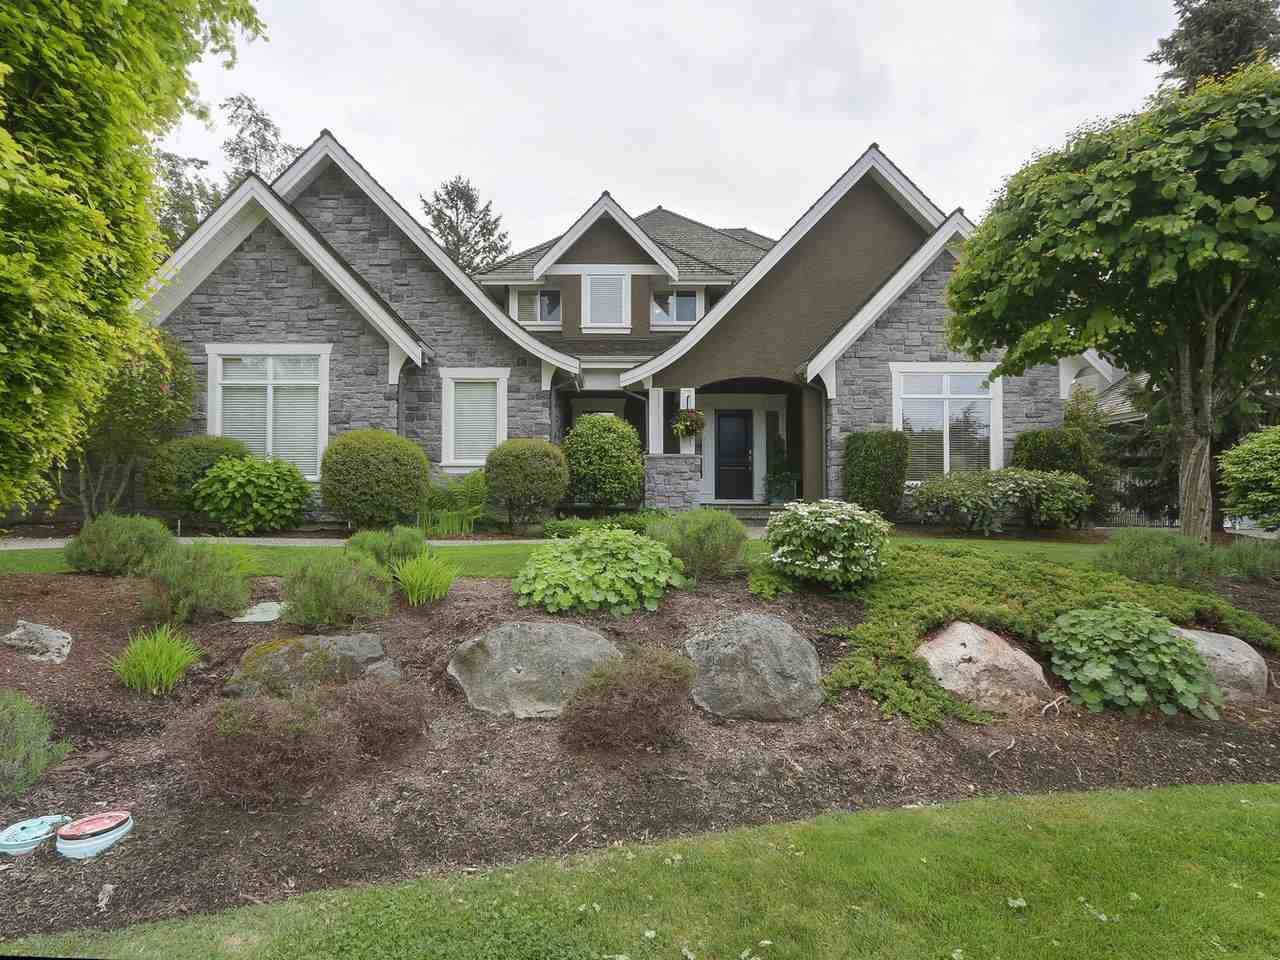 """Main Photo: 13878 20A Avenue in Surrey: Elgin Chantrell House for sale in """"Chantrell Park Estates"""" (South Surrey White Rock)  : MLS®# R2376191"""